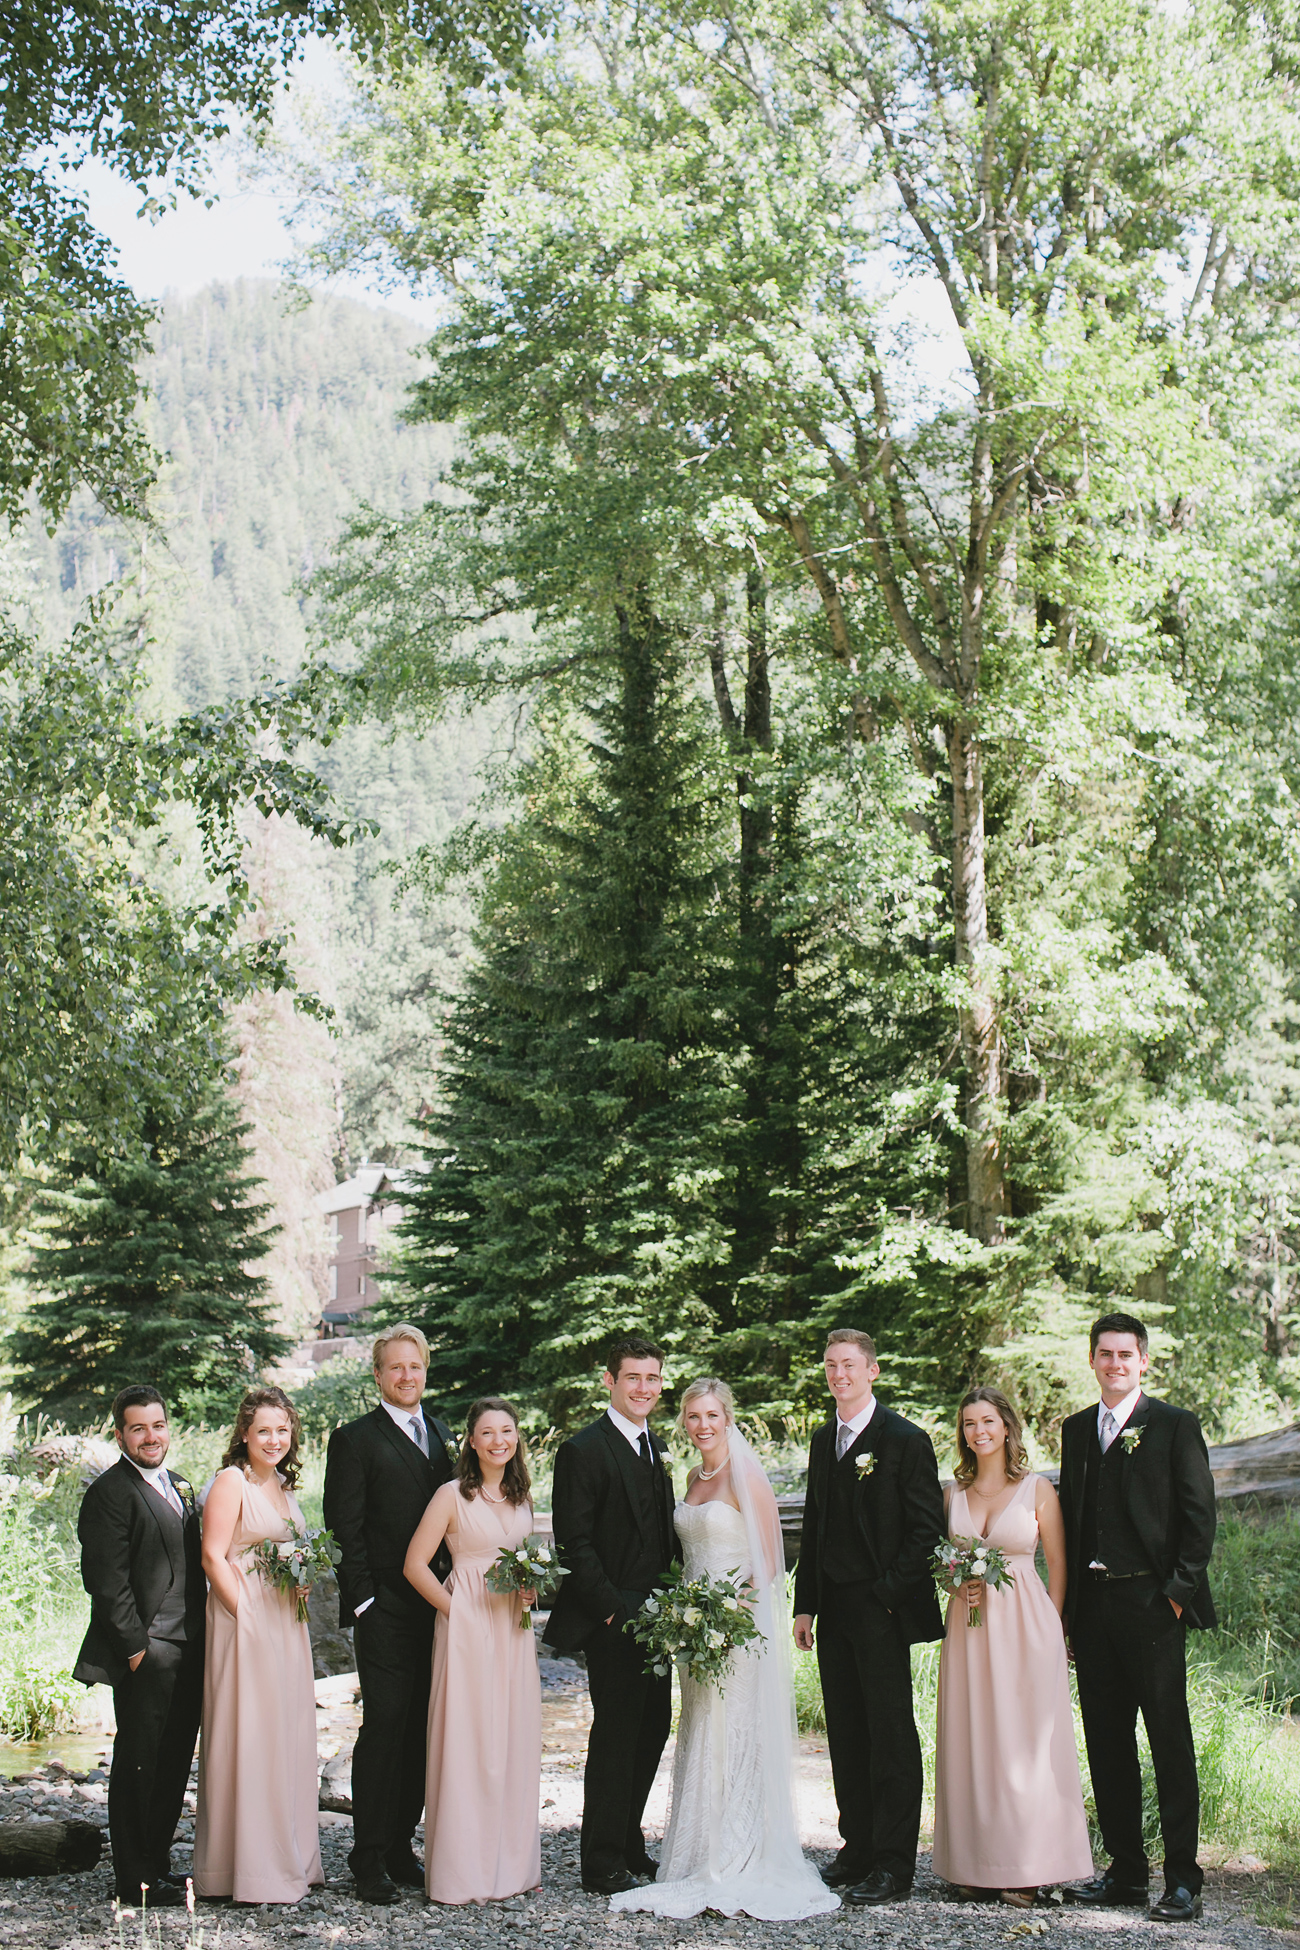 Eastern Oregon Lake Wallowa Wedding Photography by Ali Walker Walla Walla Wedding Photographer 043.JPG